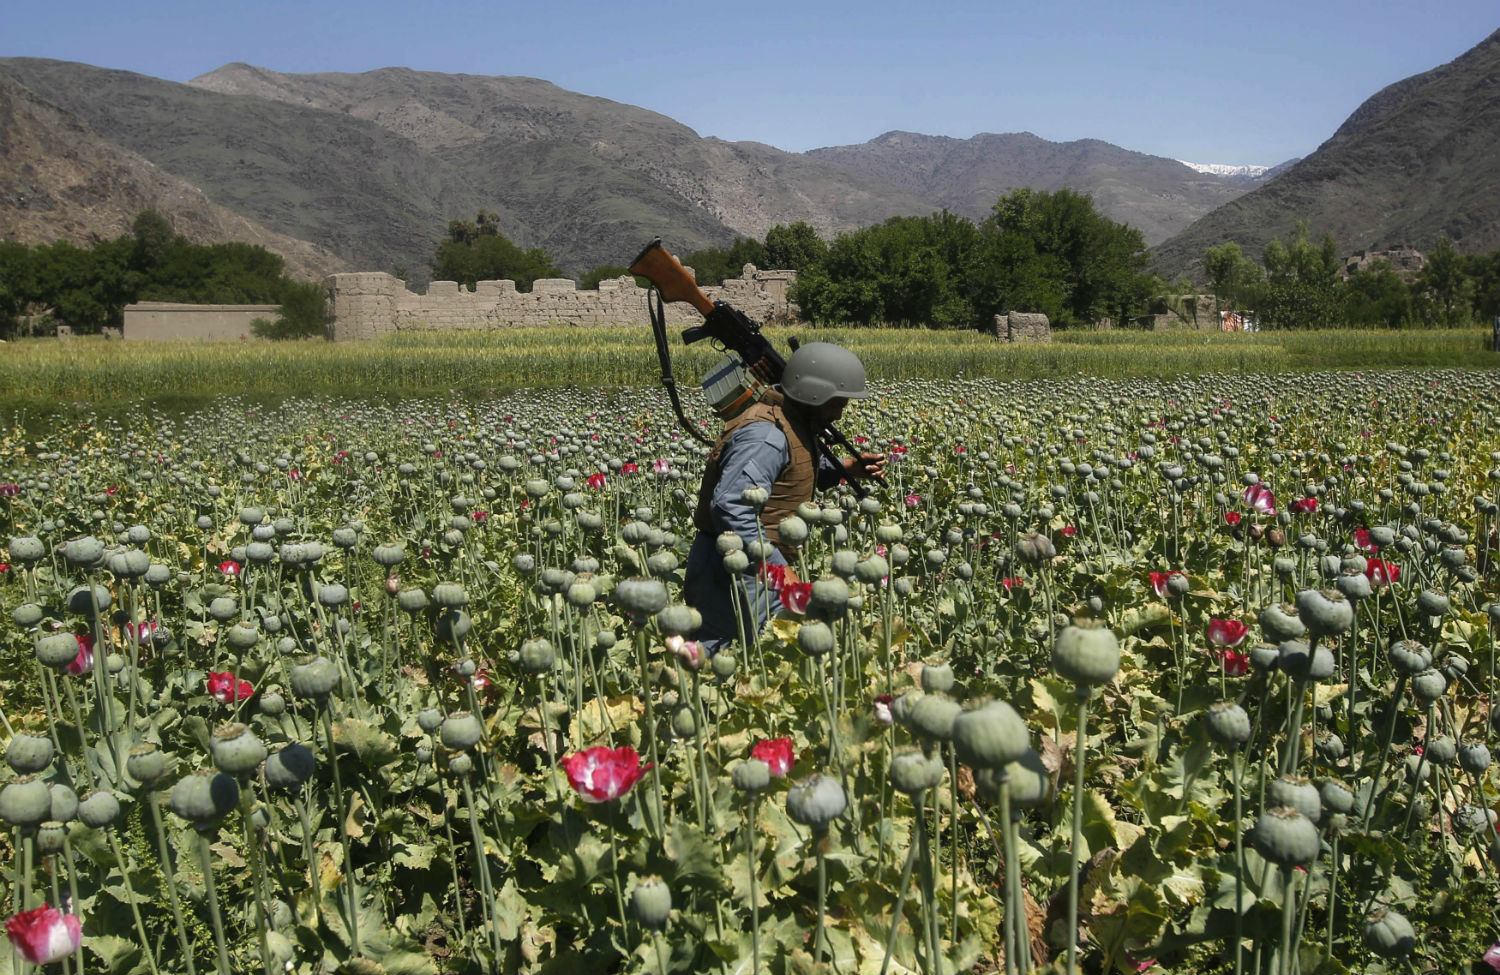 opium cultivation in afghanistan Afghanistan has been the world's leading illicit opium producer since 1992 (excluding the year 2001) afghanistan's opium poppy harvest produces more than 90% of illicit heroin globally, and more than 95% of the european supply.